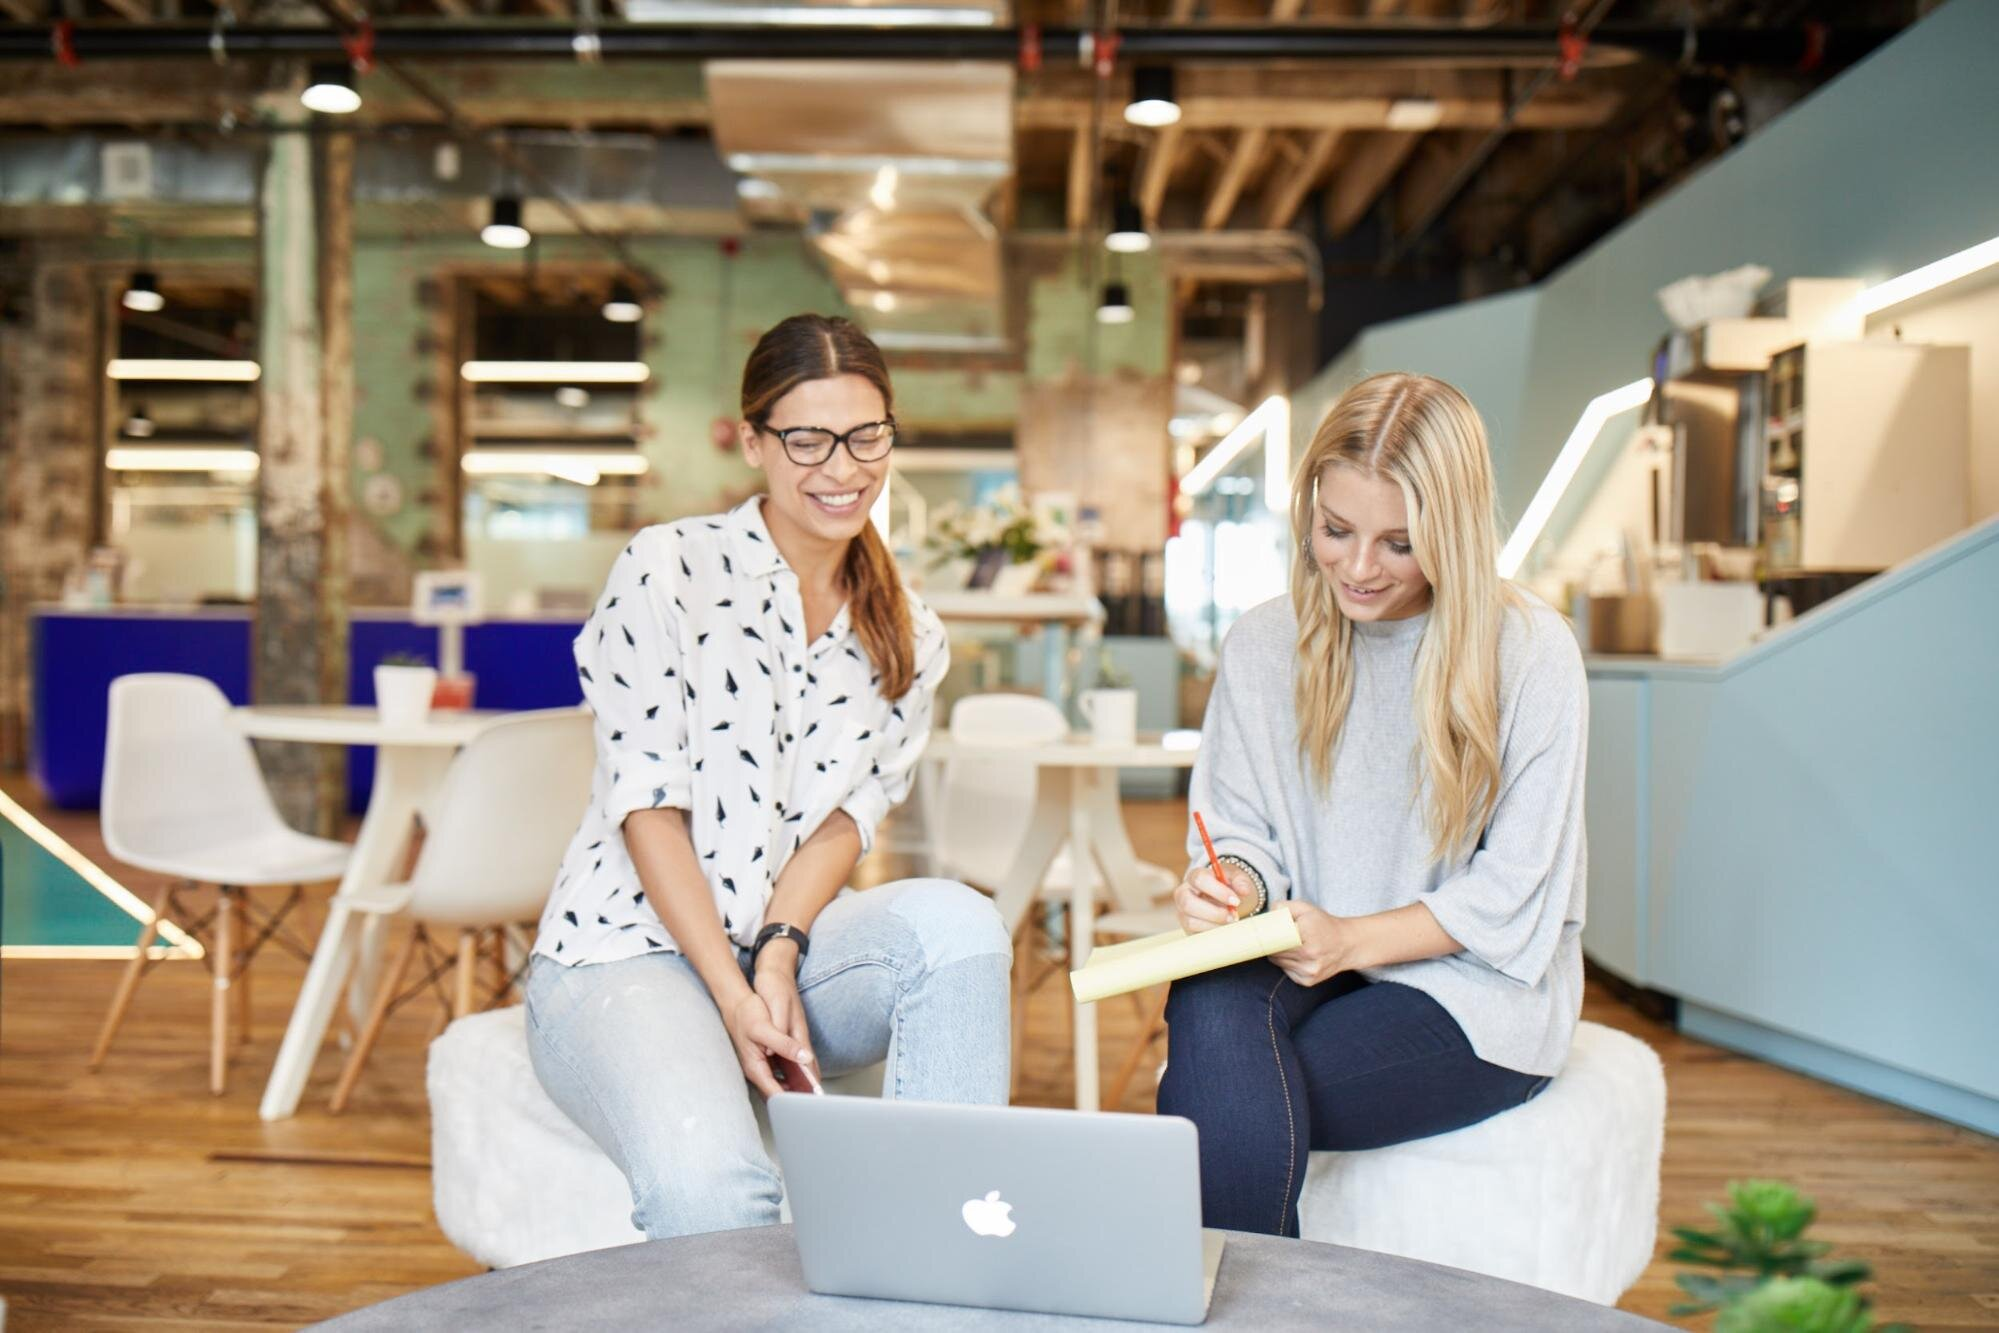 Two employees working on improving workplace wellbeing